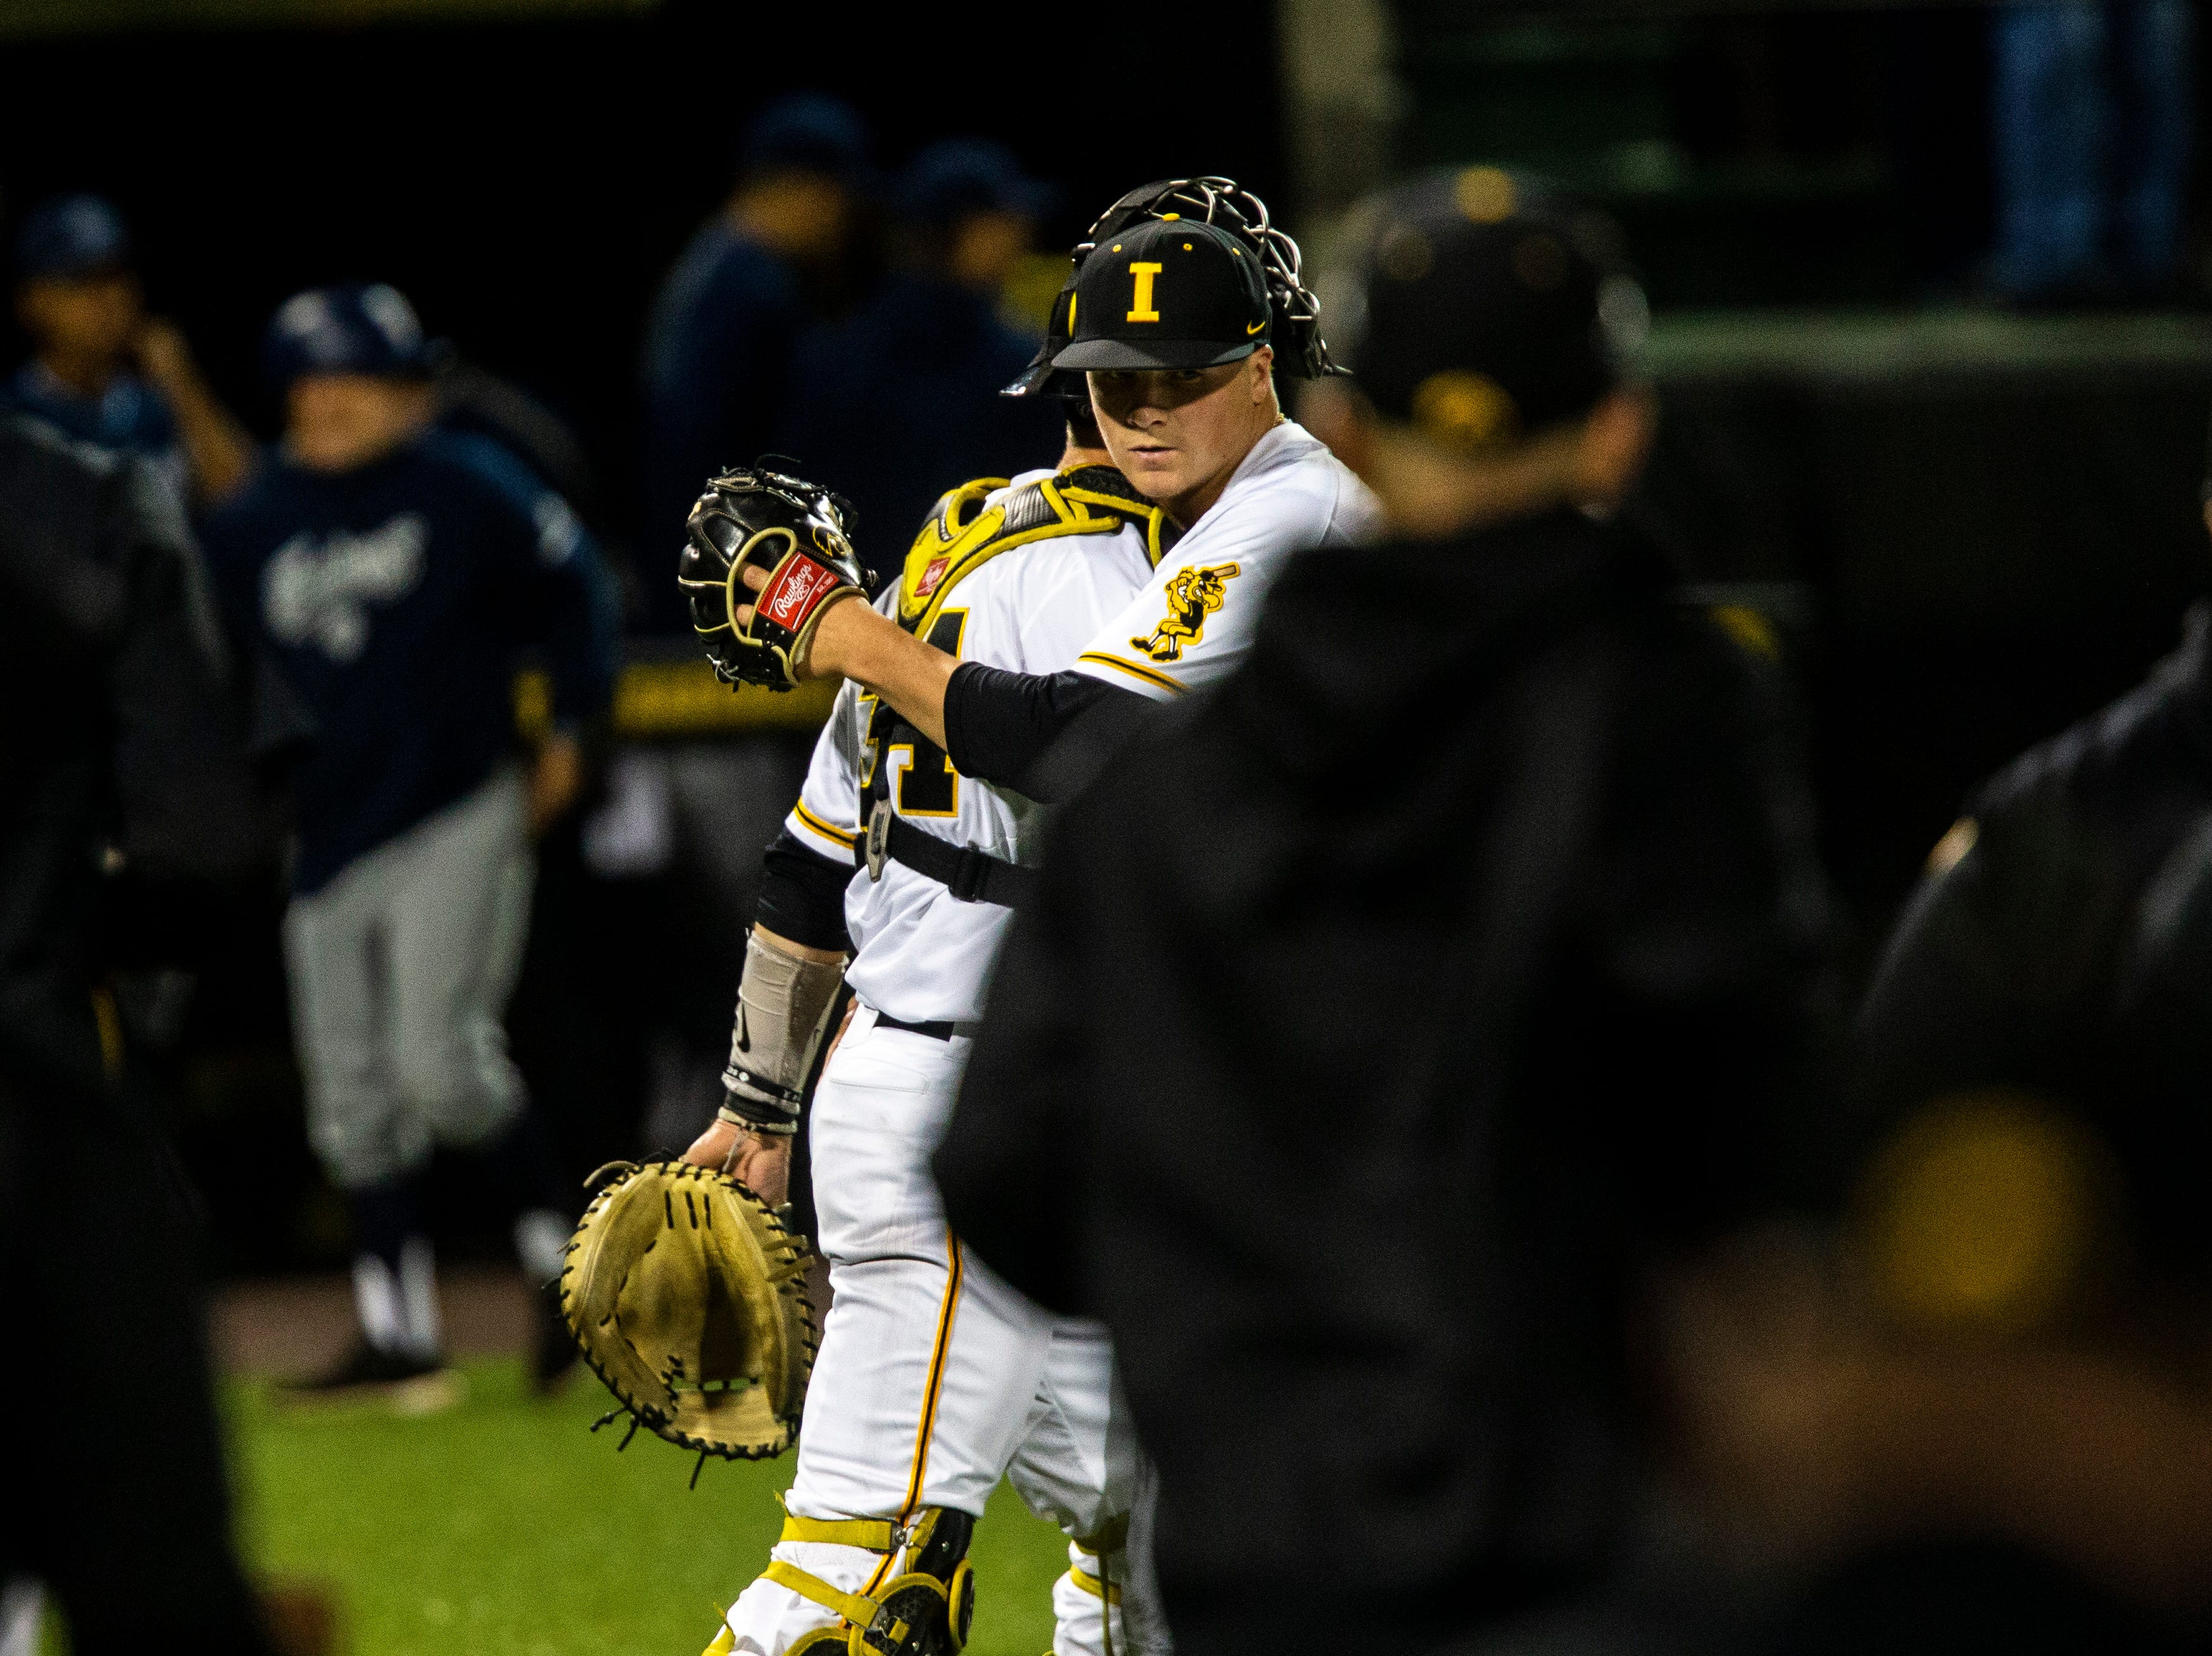 Iowa pitcher Trace Hoffman (42) hugs catcher Austin Martin, left, after NCAA non conference baseball game, Friday, May 3, 2019, at Duane Banks Field in Iowa City, Iowa.